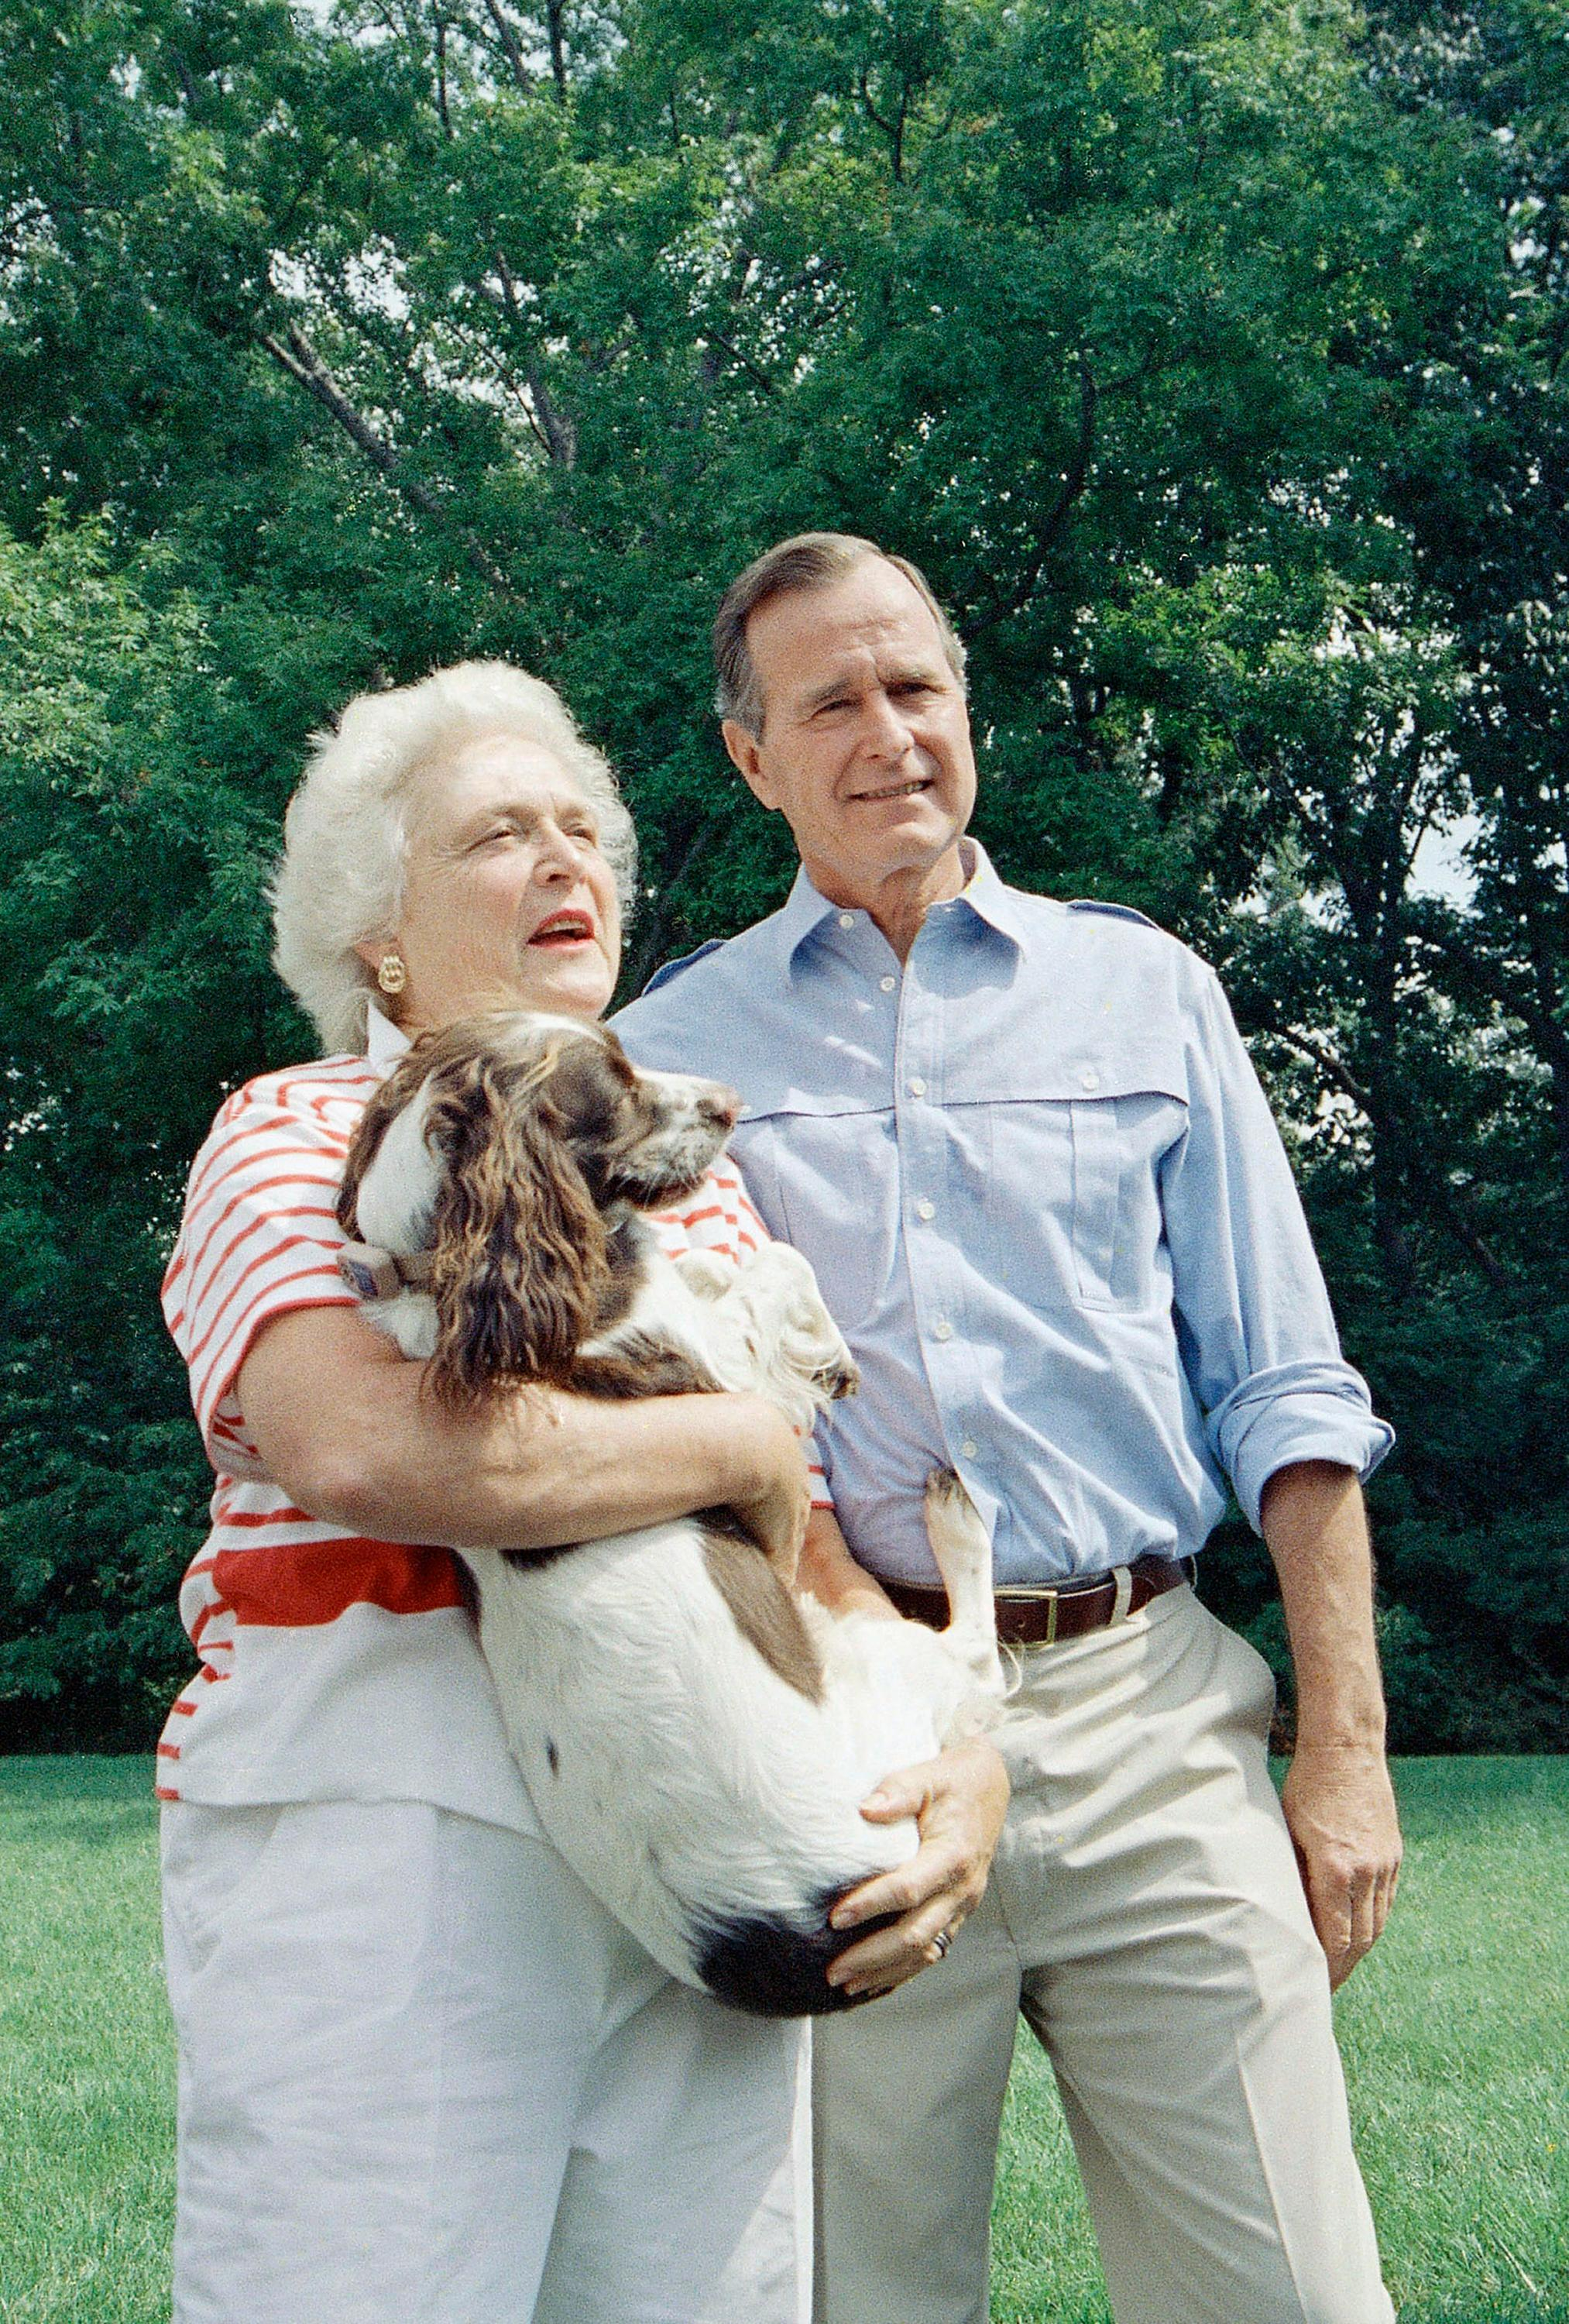 "FILE - In this Sept. 3, 1988 file photo, Vice President George H.W. Bush, right, and his Barbara Bush, holding the family dog, talk to reporters after a press conference outside their home in Washington, D.C. Former first couple George and Barbara Bush's relationship is a true love story, described by granddaughter Jenna Bush Hager as ""remarkable."" They met at a Christmas dance. She was 17. He was 18. Two years later they were married. Now 73 years later, with Barbara Bush declining further medical care for health problems, they are the longest-married couple in presidential history. (AP Photo/J. Scott Applewhite, File)"